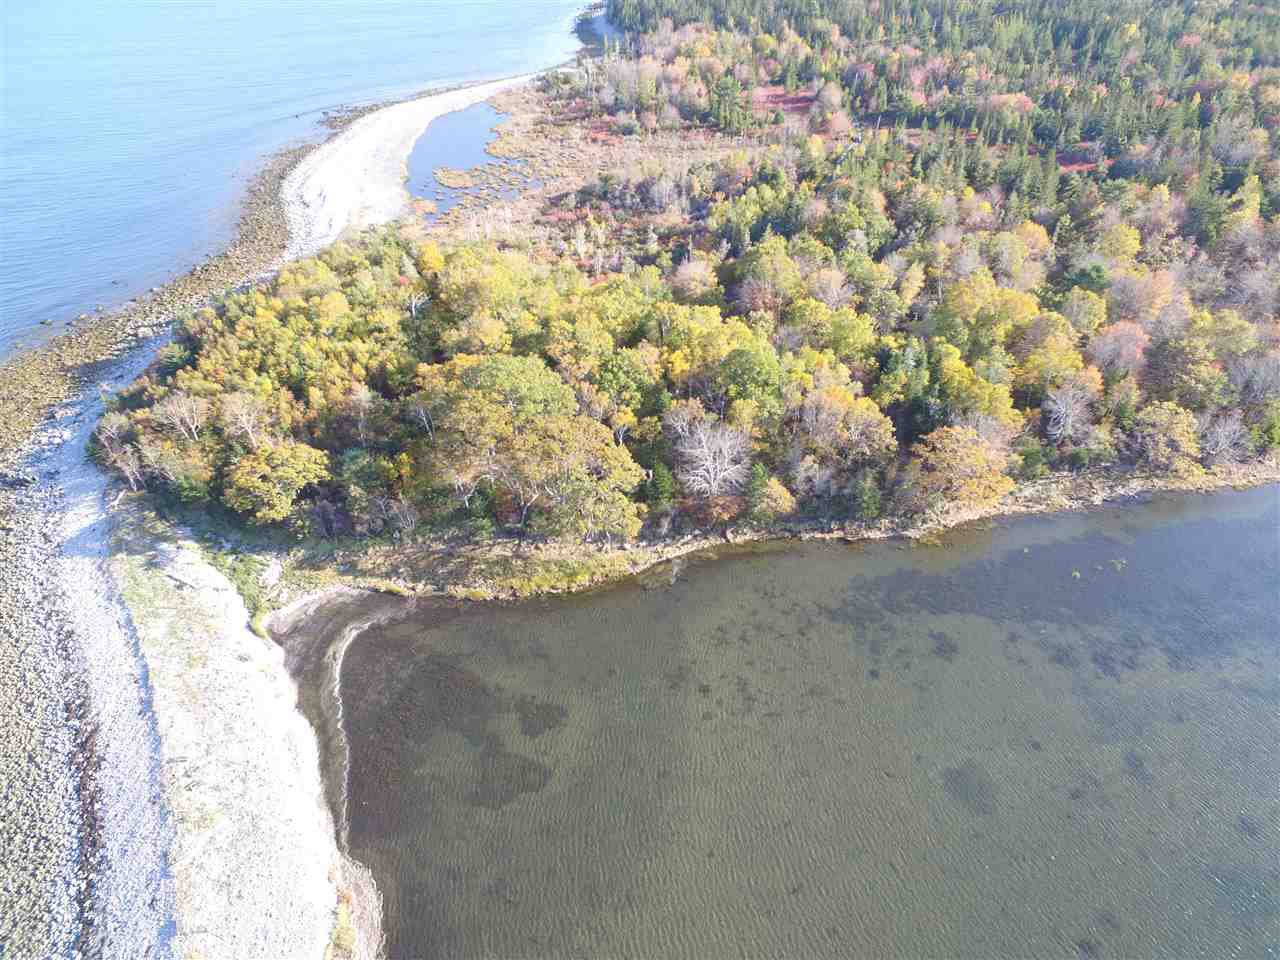 Main Photo: Lot 14 McLeans Island Road in Jordan Bay: 407-Shelburne County Vacant Land for sale (South Shore)  : MLS®# 202022897